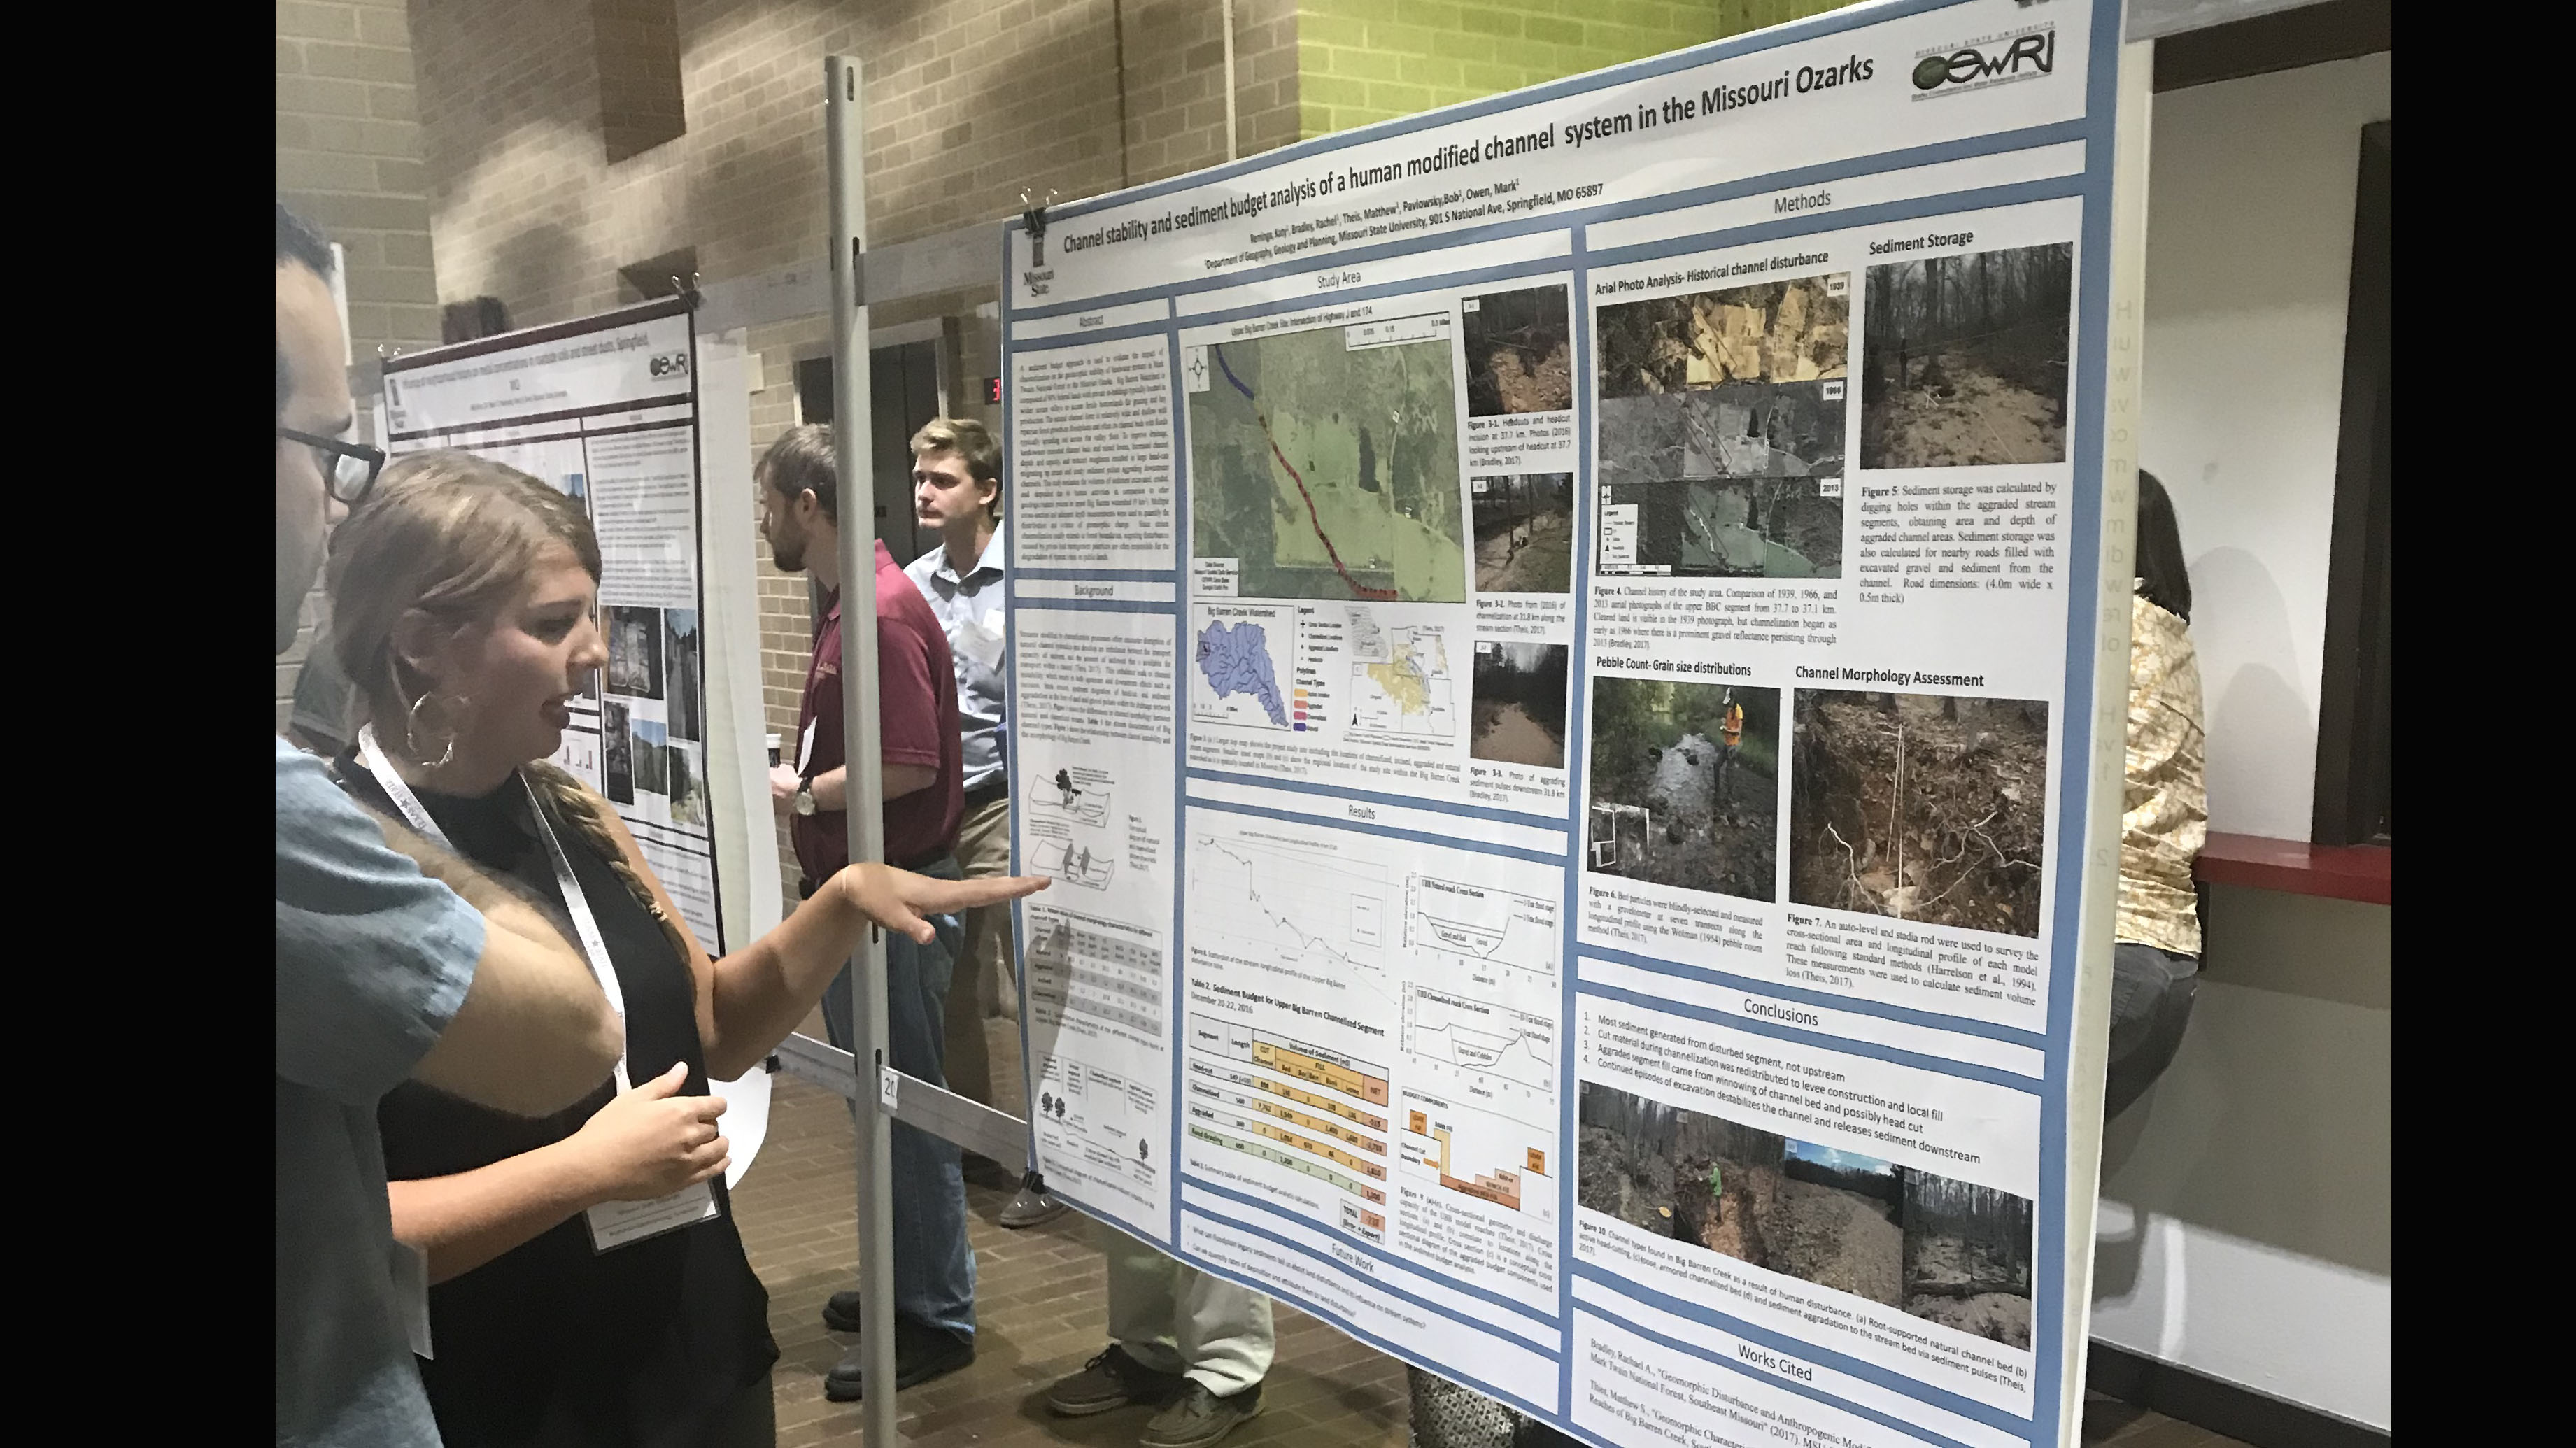 Katy Reminga discusses her poster.